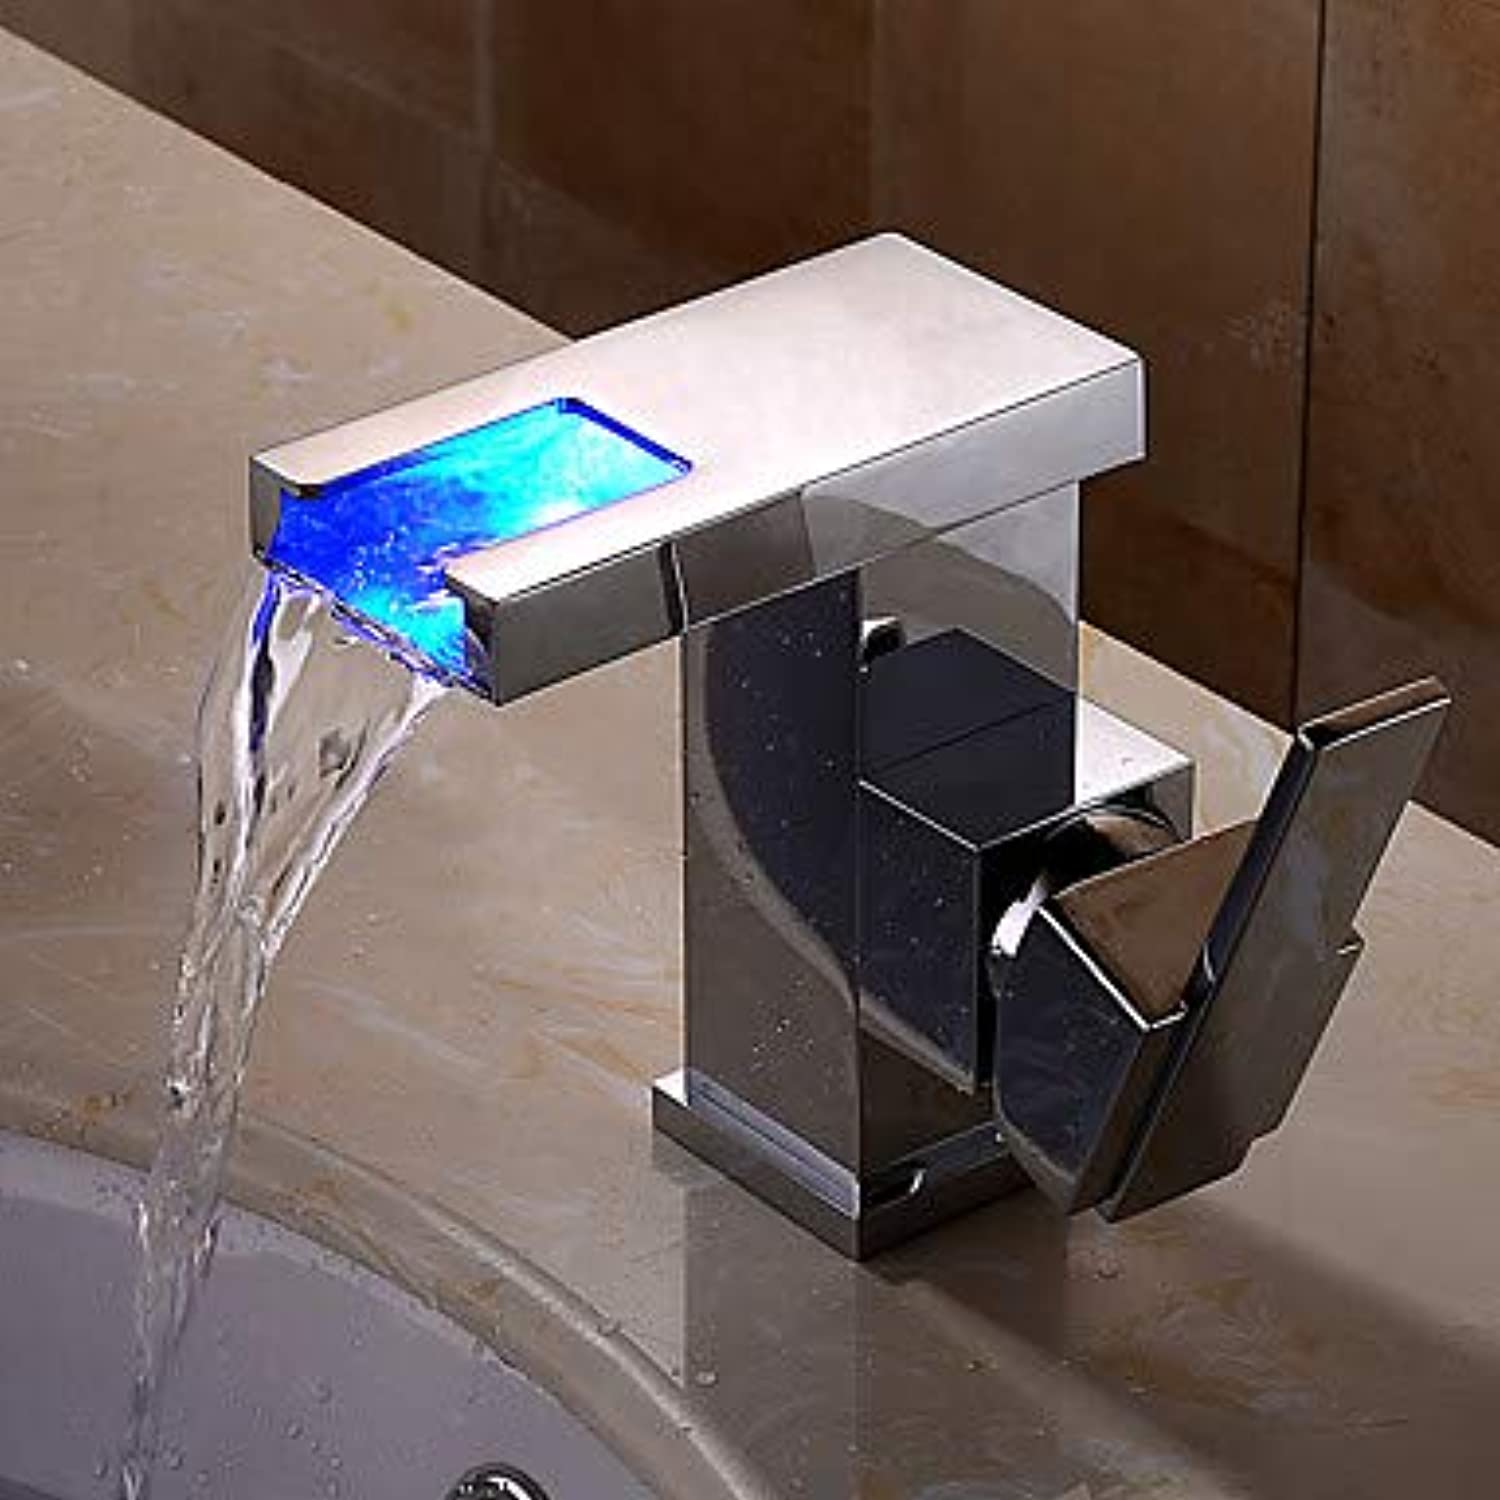 Bathroom Sink Faucet - Waterfall Widespread   New Design Chrome Wall Mounted Single Handle One Hole